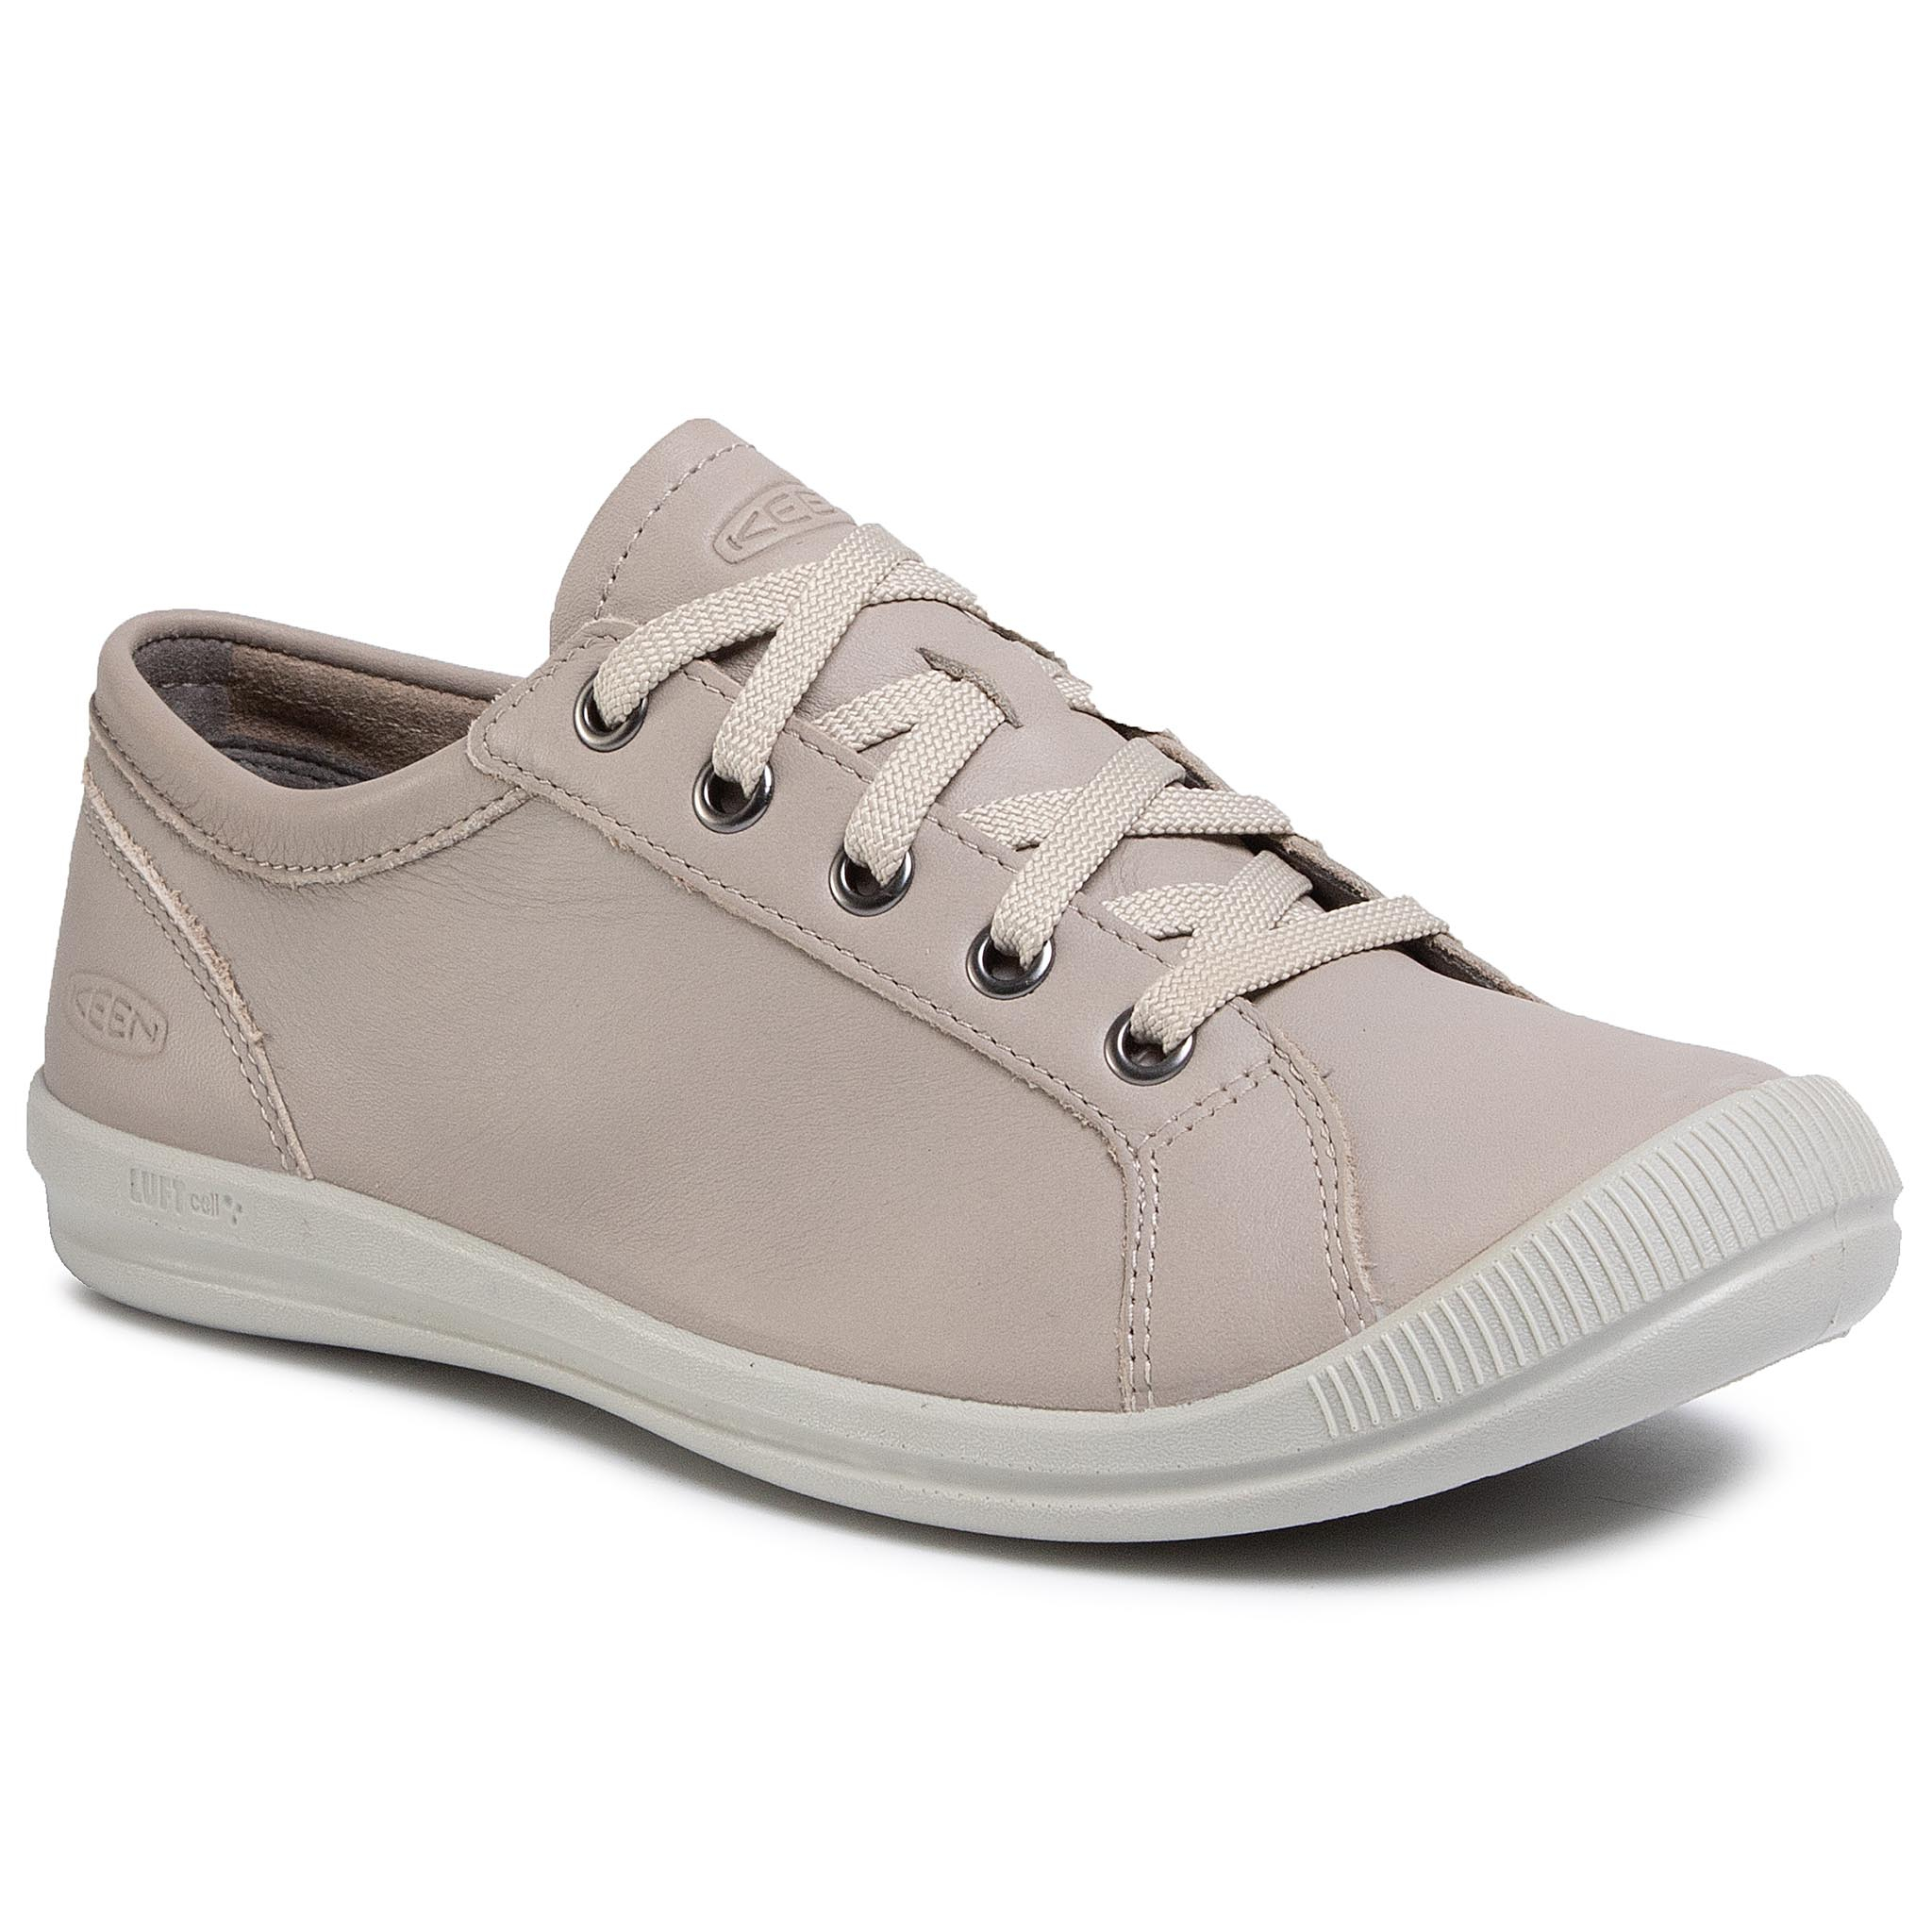 Teniși Keen - Lorelai Sneaker 1020507 London Fog imagine epantofi.ro 2021